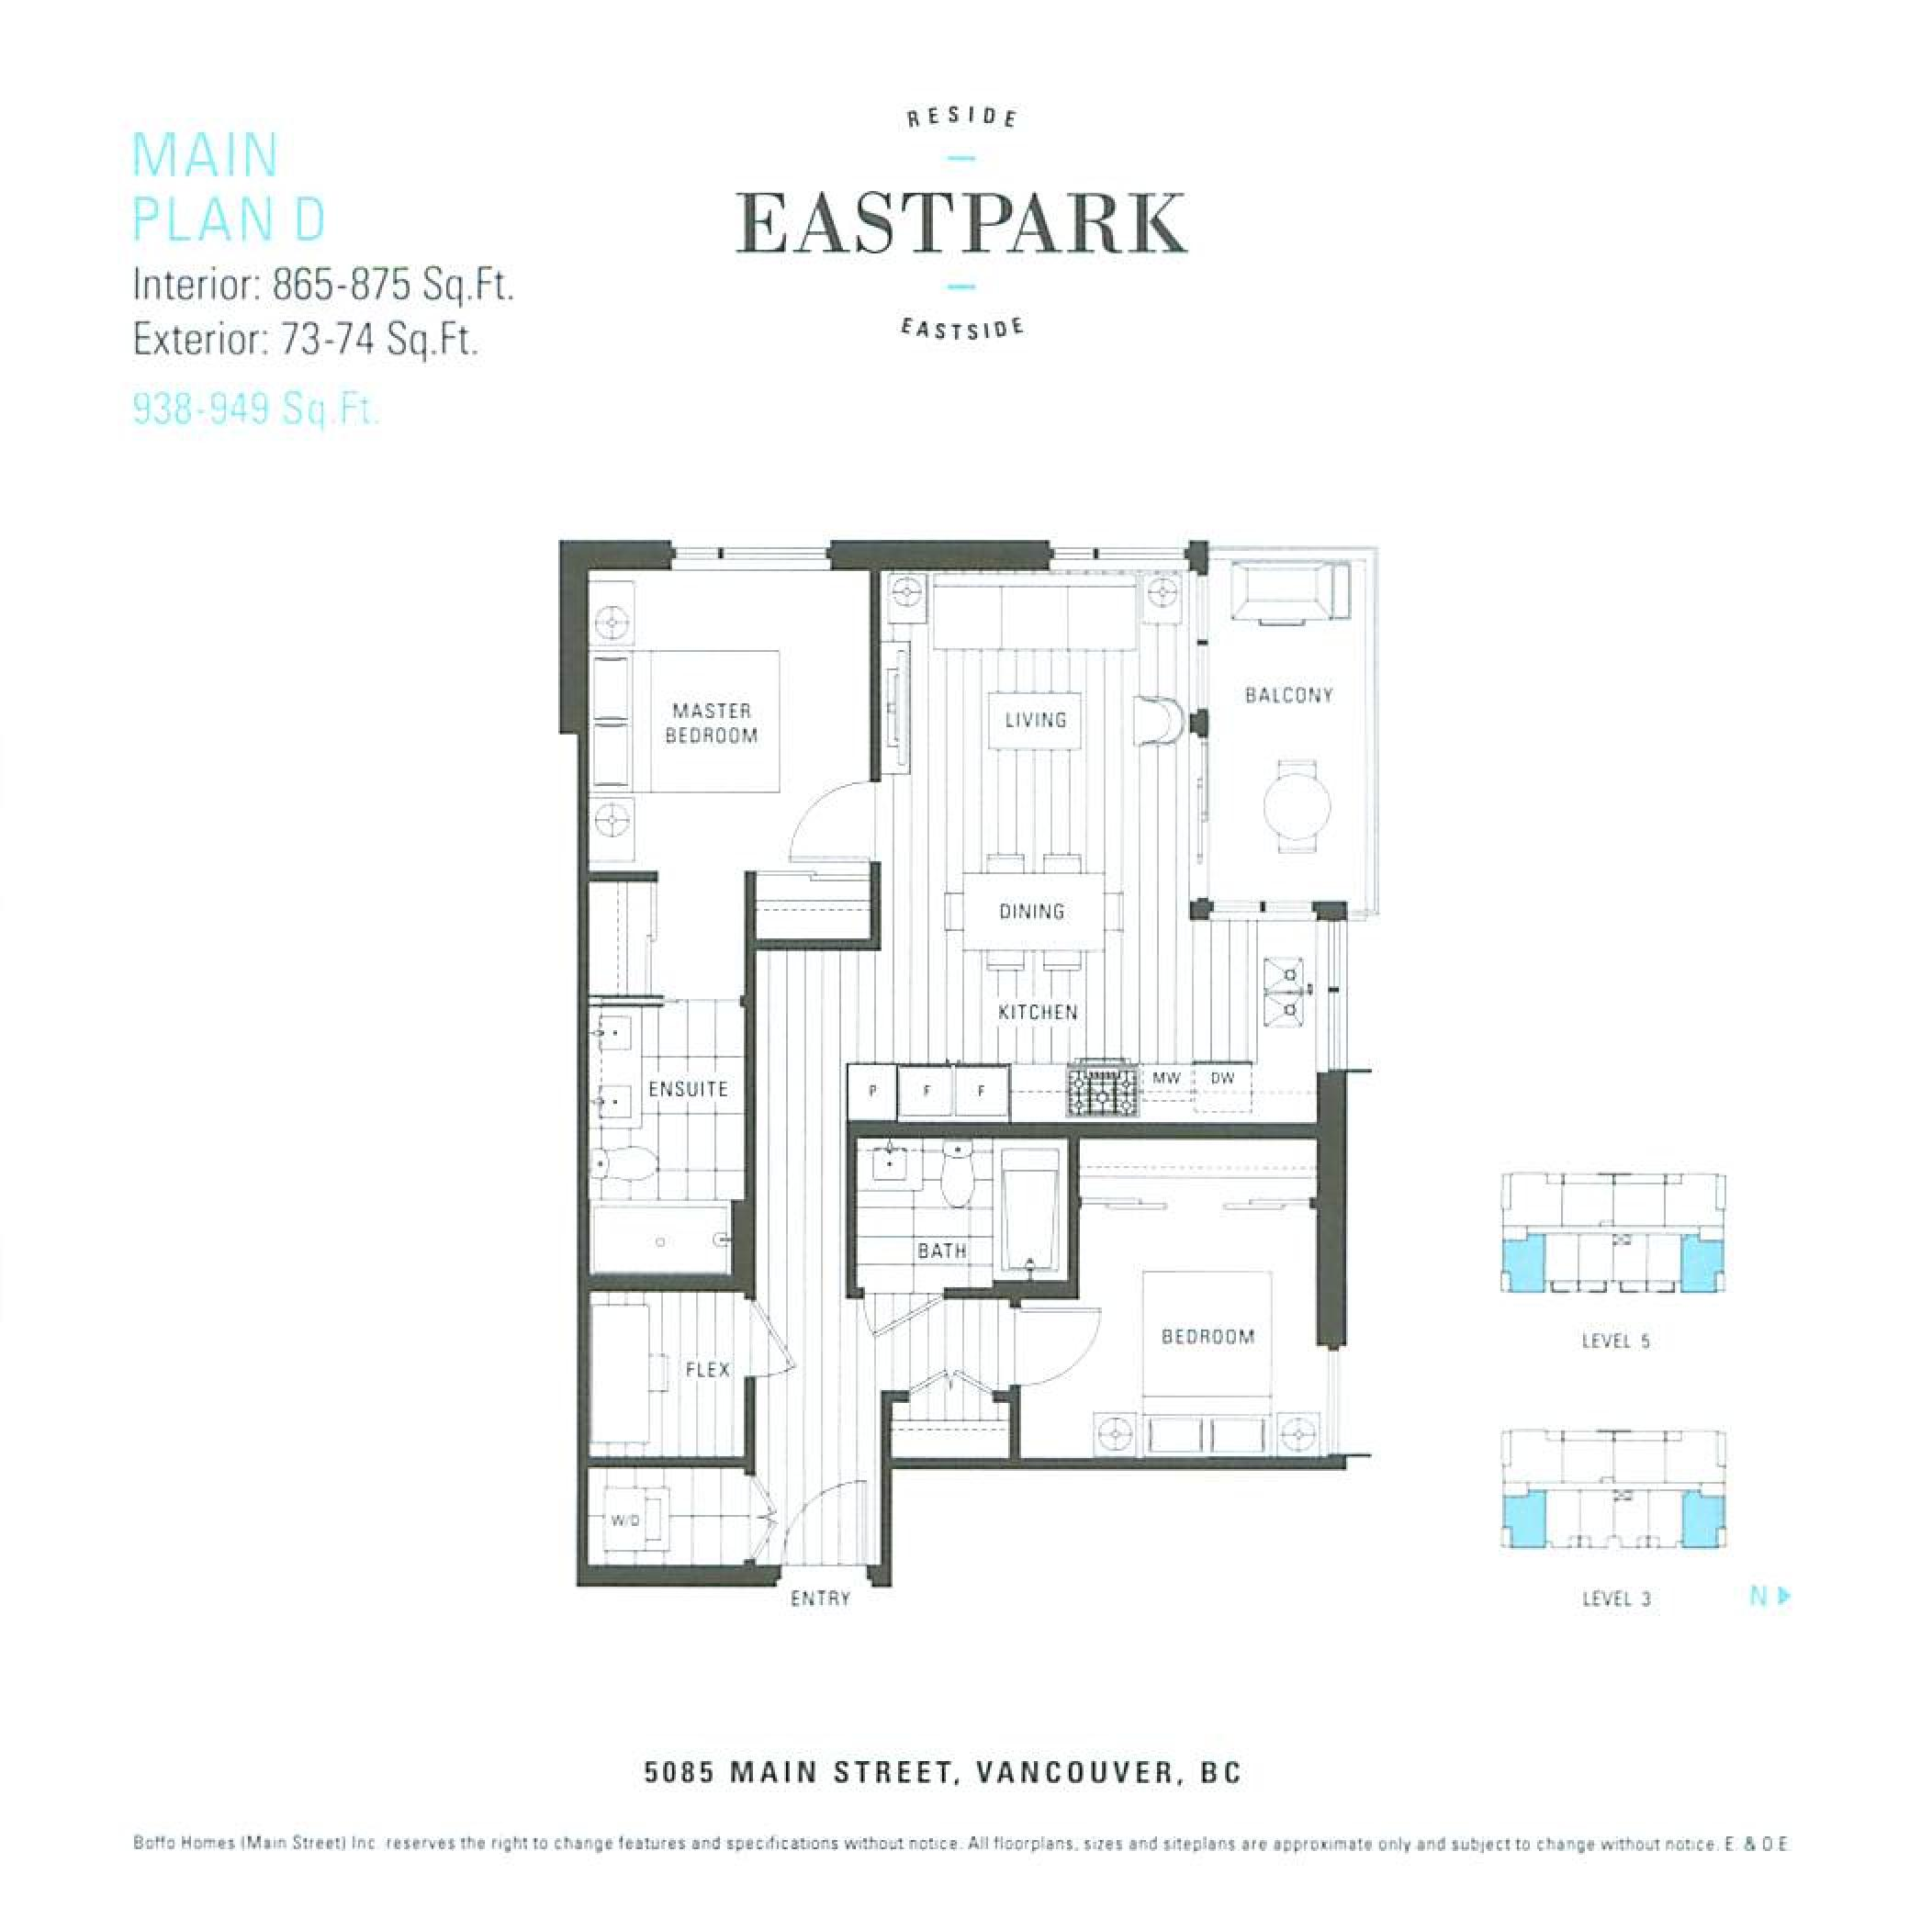 EastPark Main Smaller Floor Plans Mike Stewart-page-004